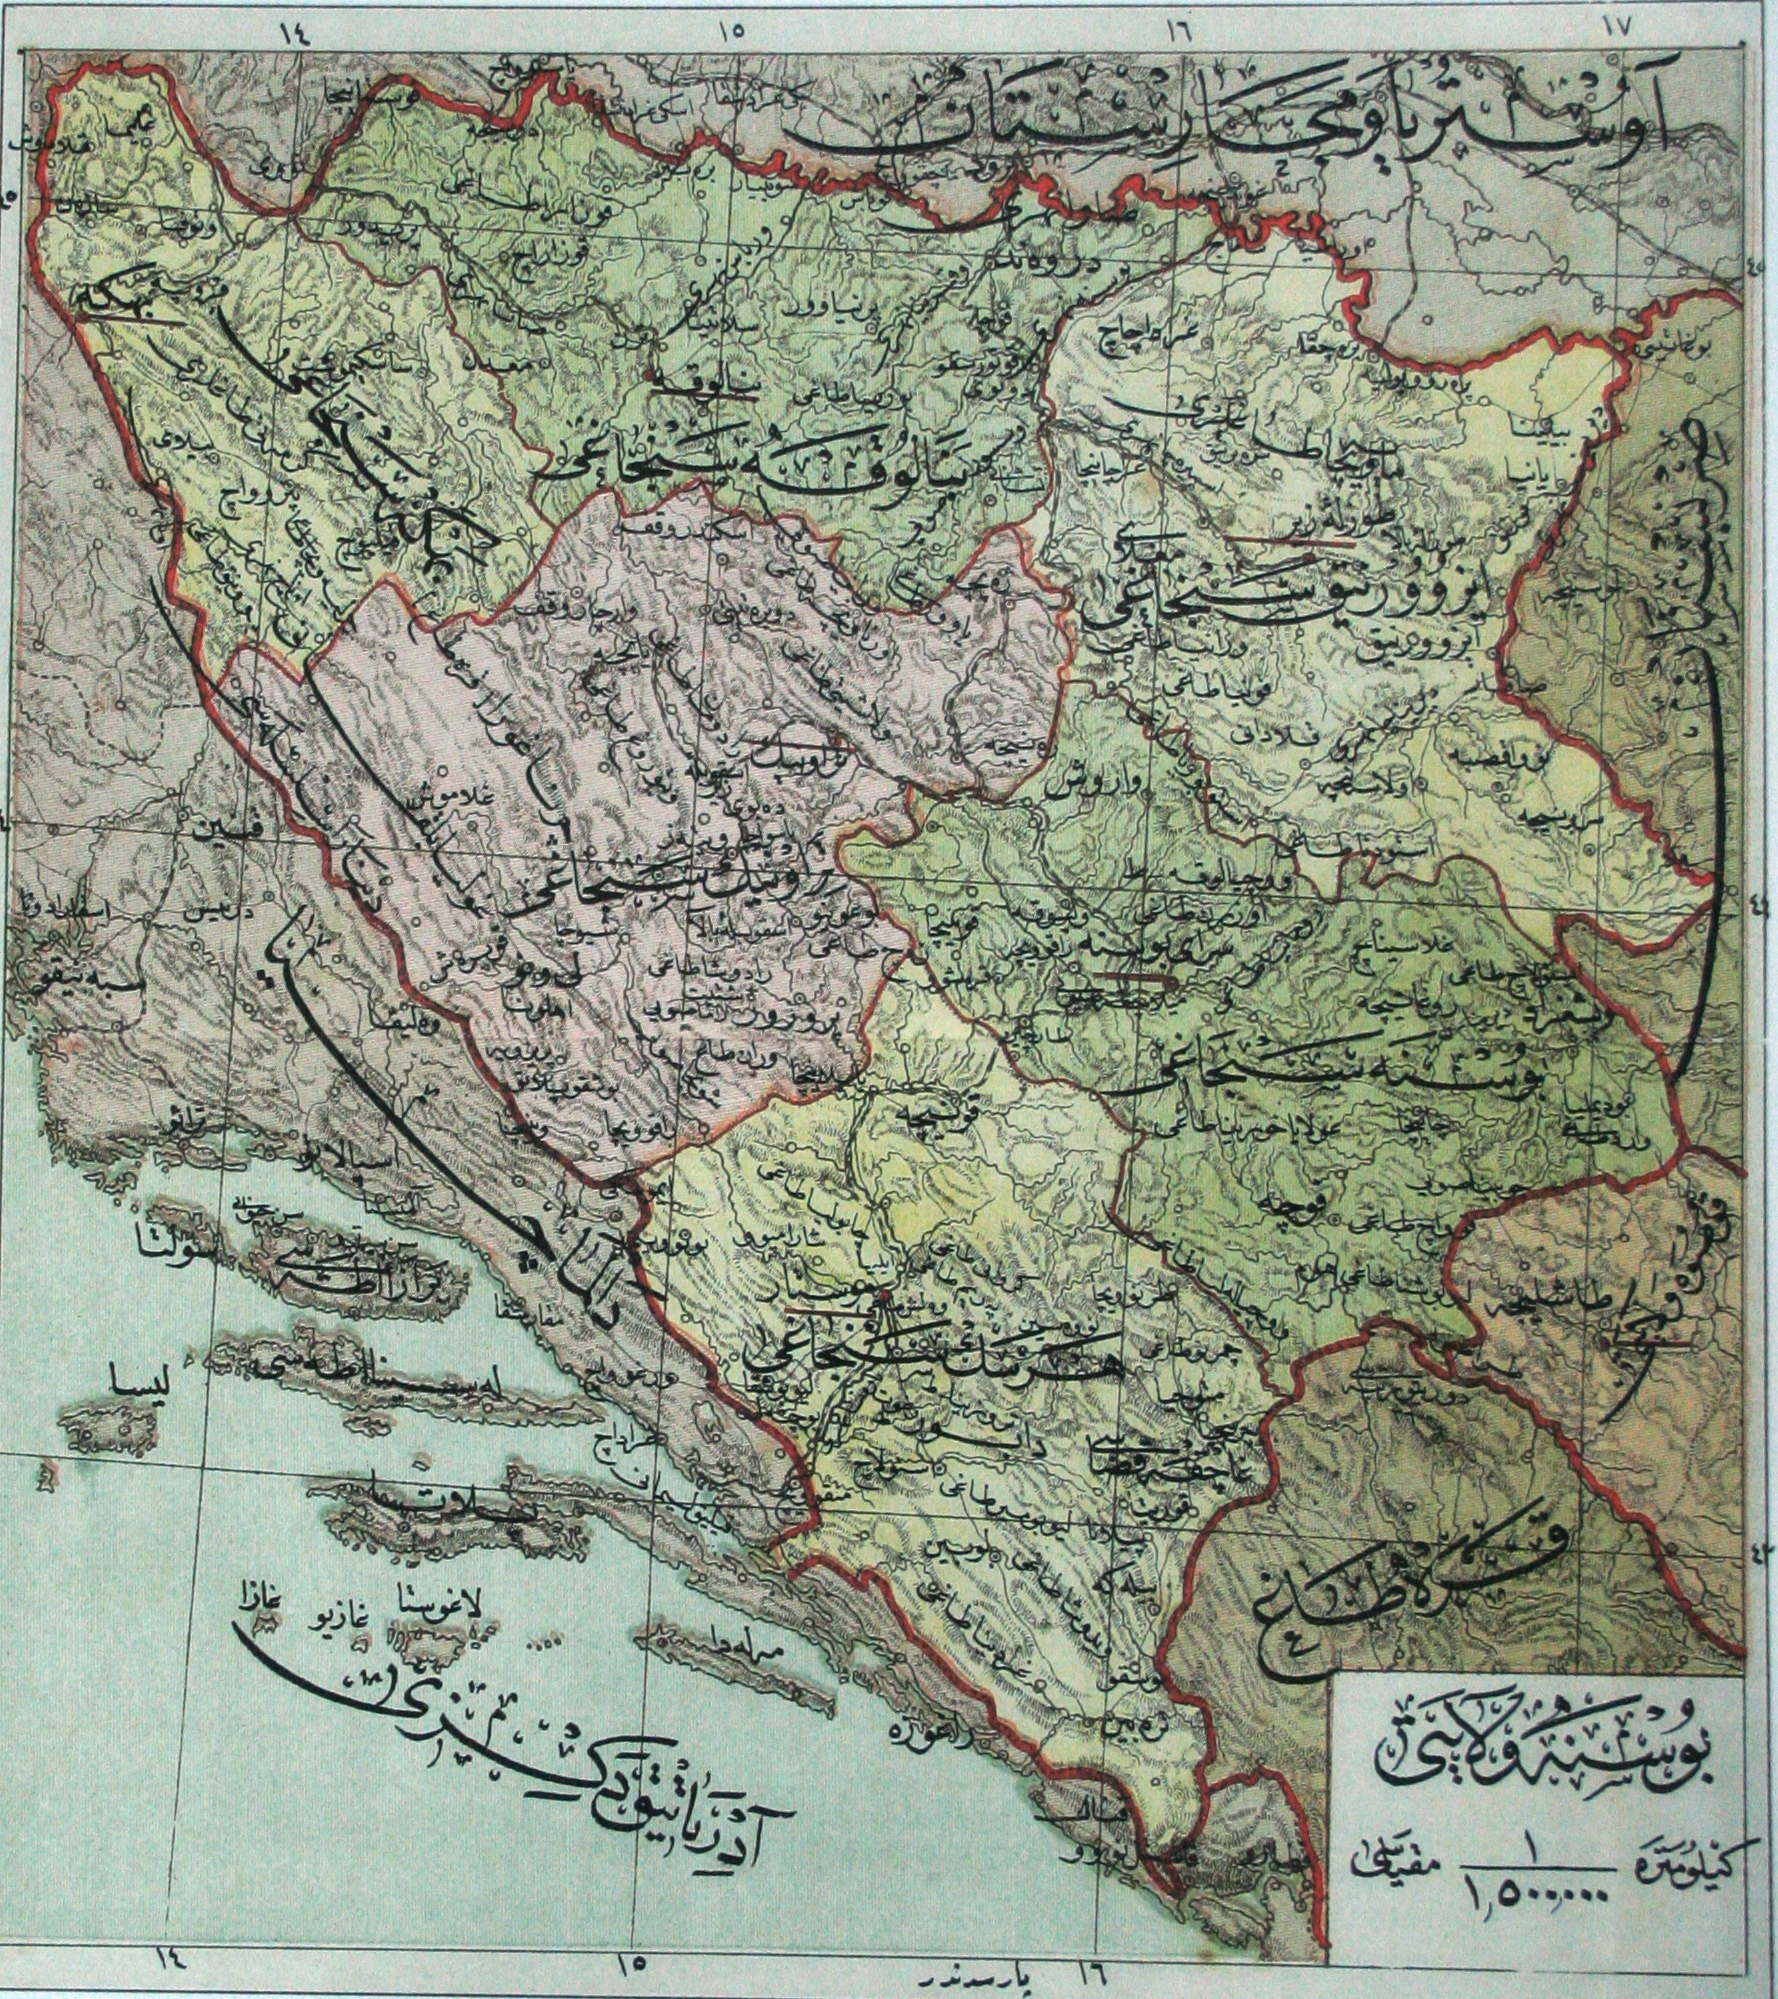 Bosna vilayeti